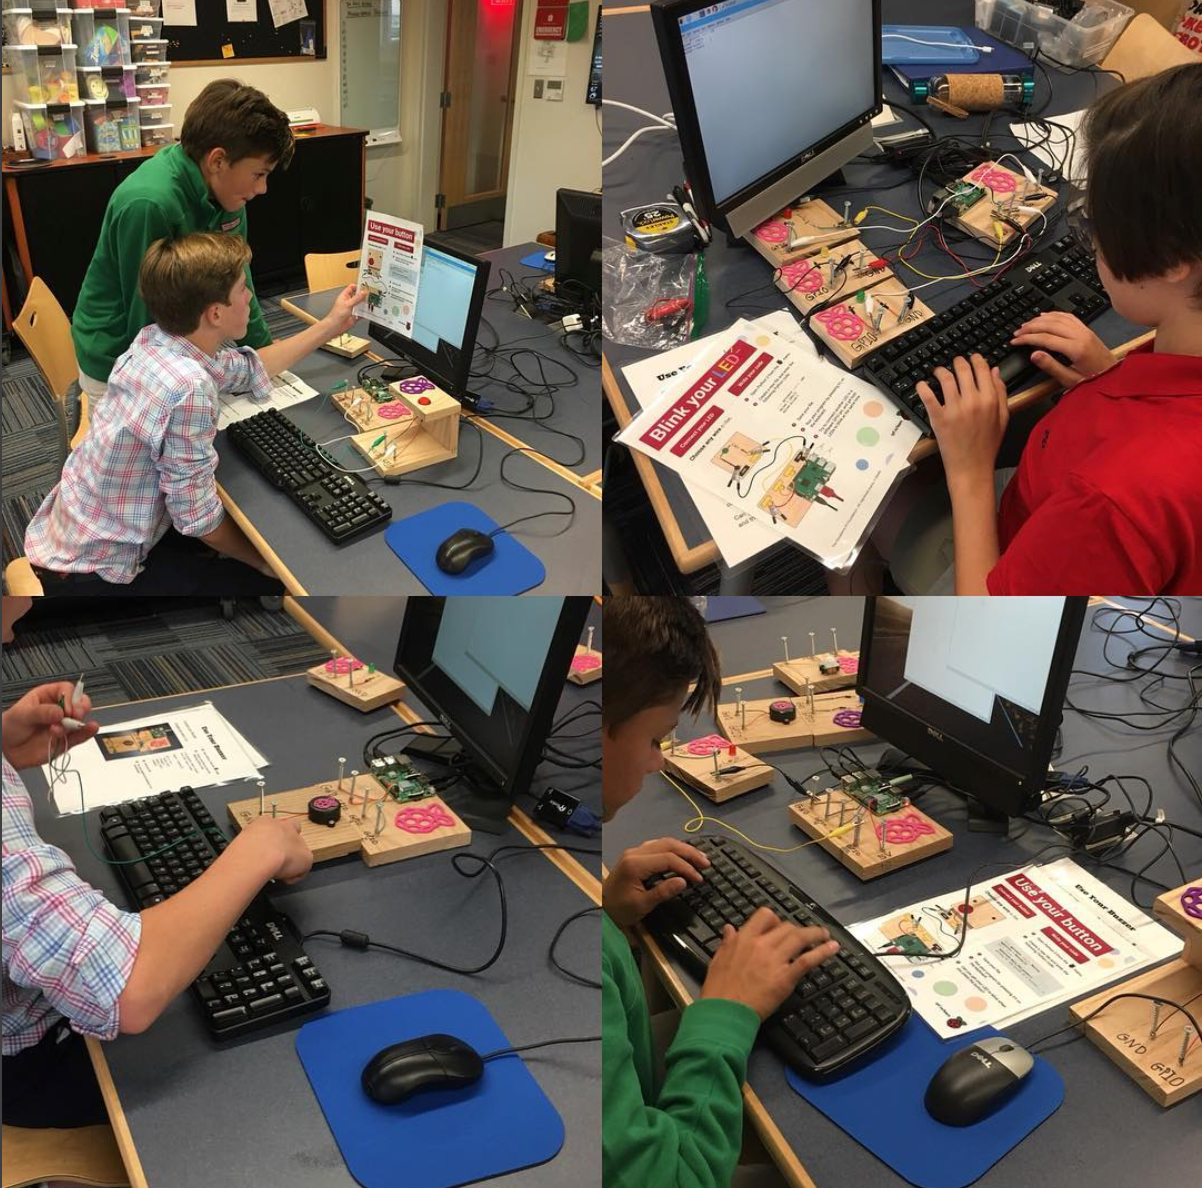 Students taking part in digital making activities in a school maker space